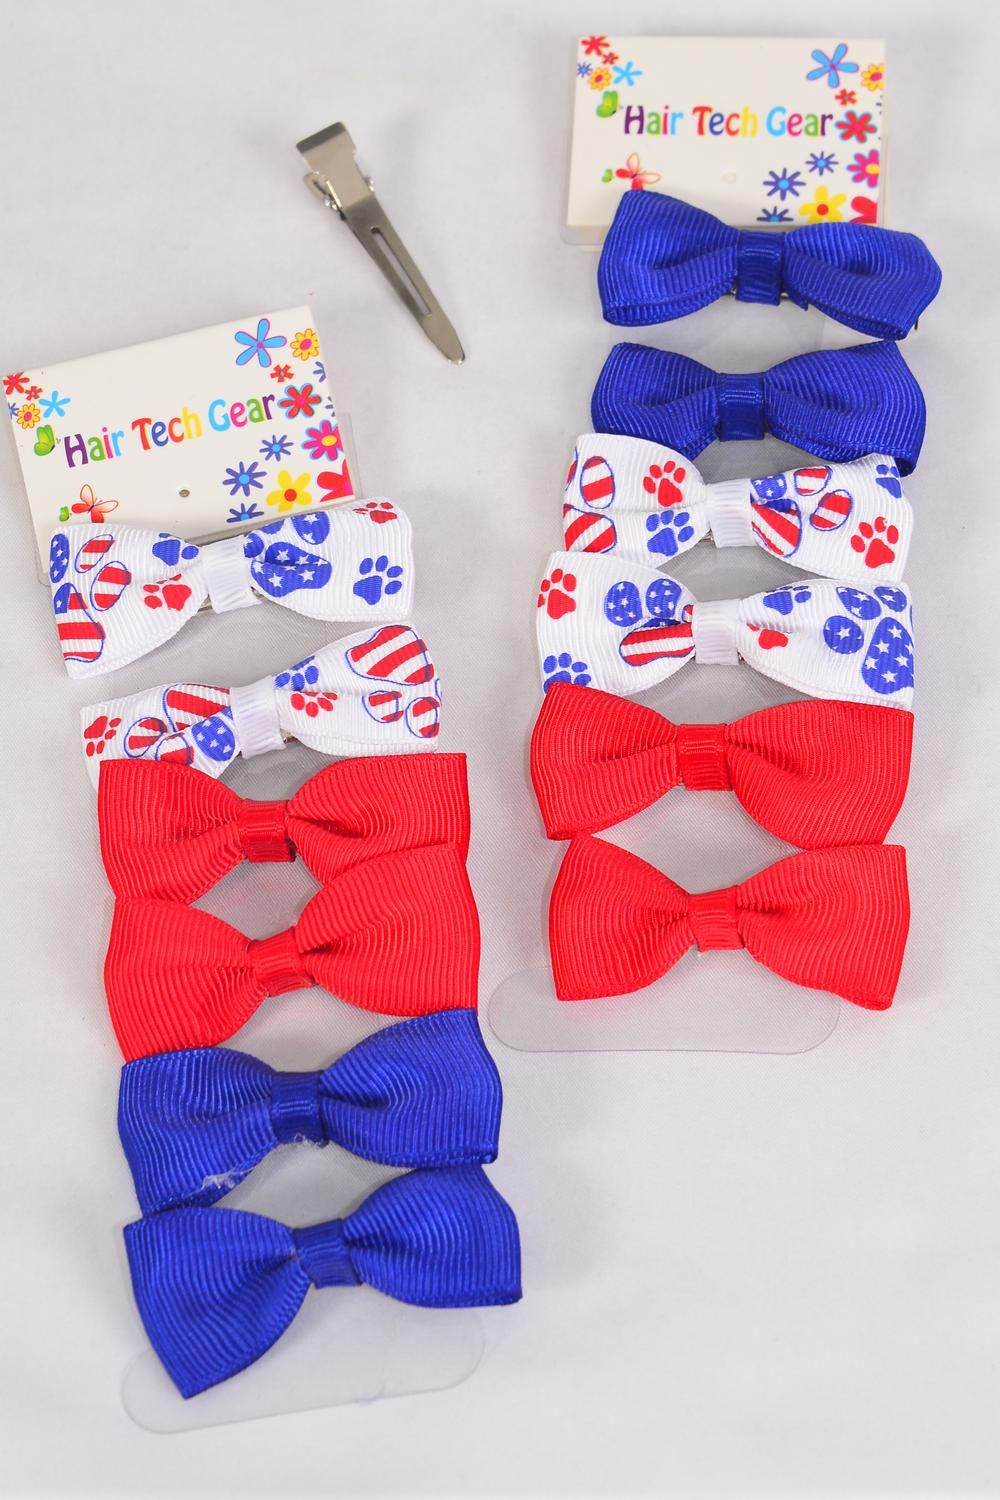 "Hair Biw Grosgrain Bow-tie 6 pcs Patriotic-Flag Paw Print Red White Blue Mix/DZ **Flag Paw Print** Alligator Clip,Bow Size-2.5""x 1"" Wide,6 pcs per card,12 card=Dozen"